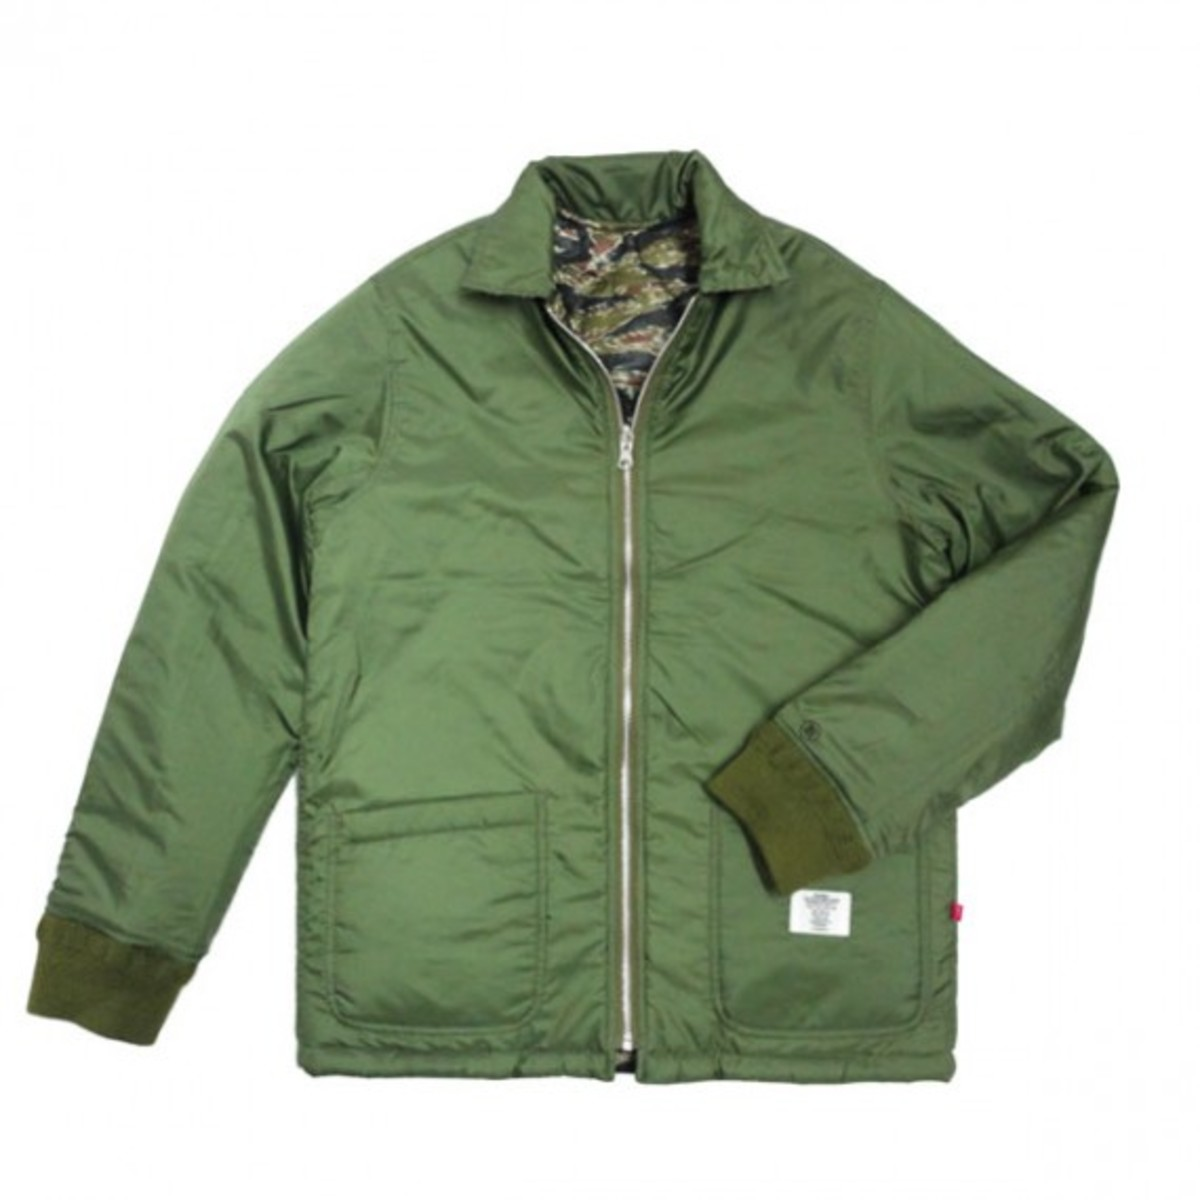 joey-quilting-jacket-camo-02